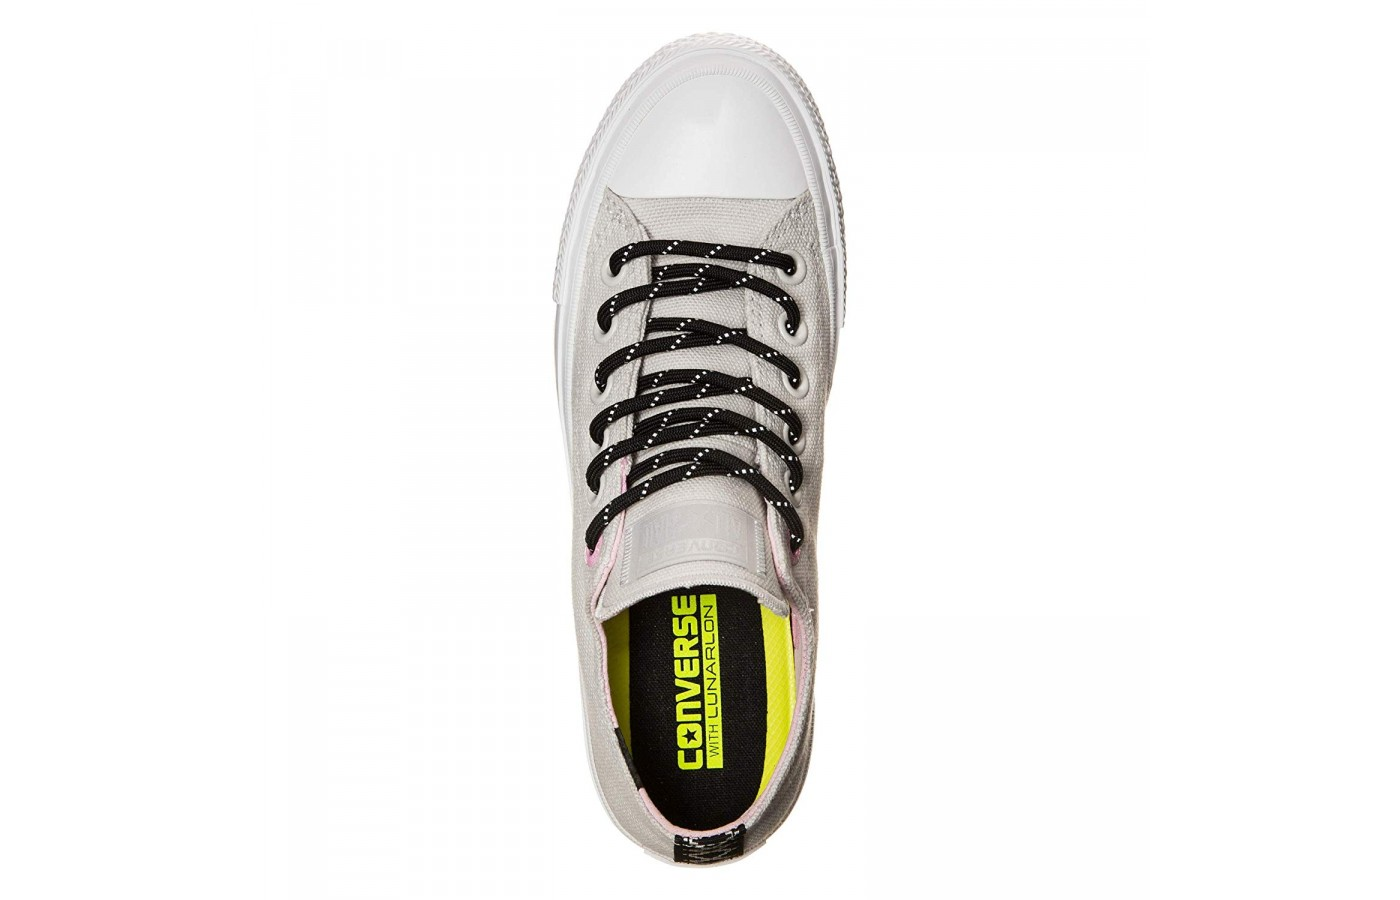 Converse Chuck II 2 Shield upper